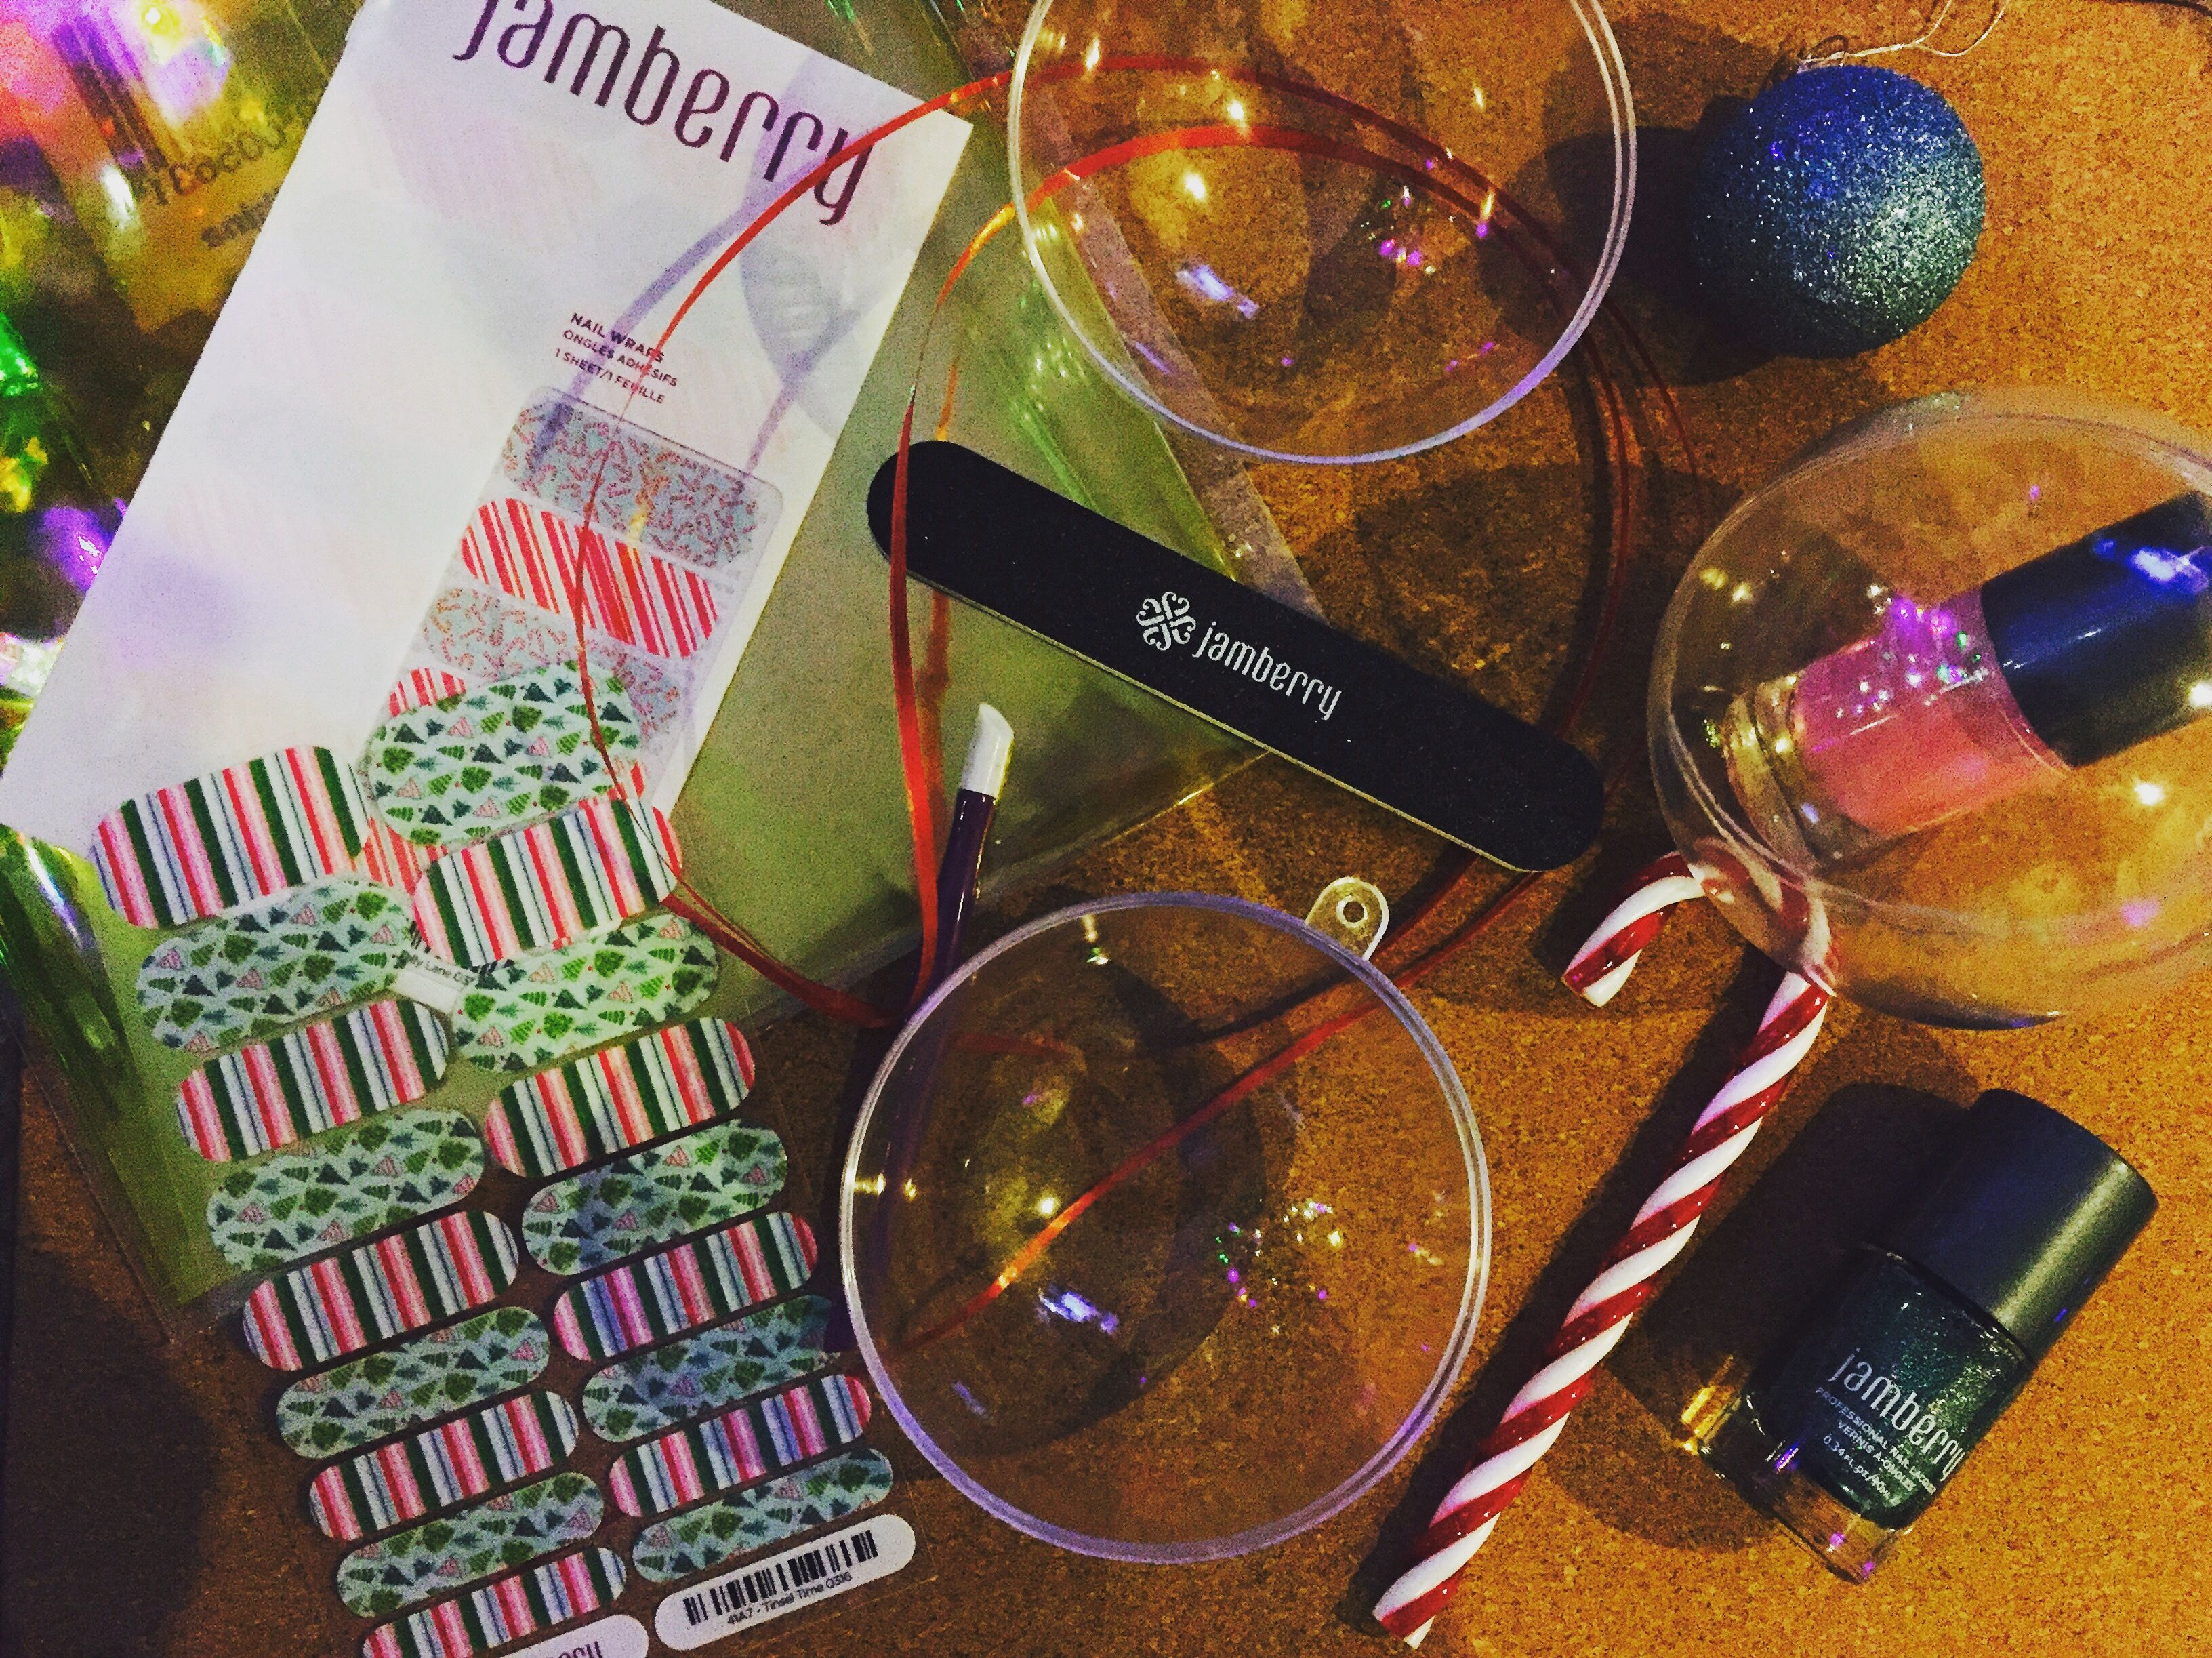 Jamberry makes great gift ideas. We're making teachers gifts and you can too. Contact me for more info https://reneehill.jamberry.com/au/en/